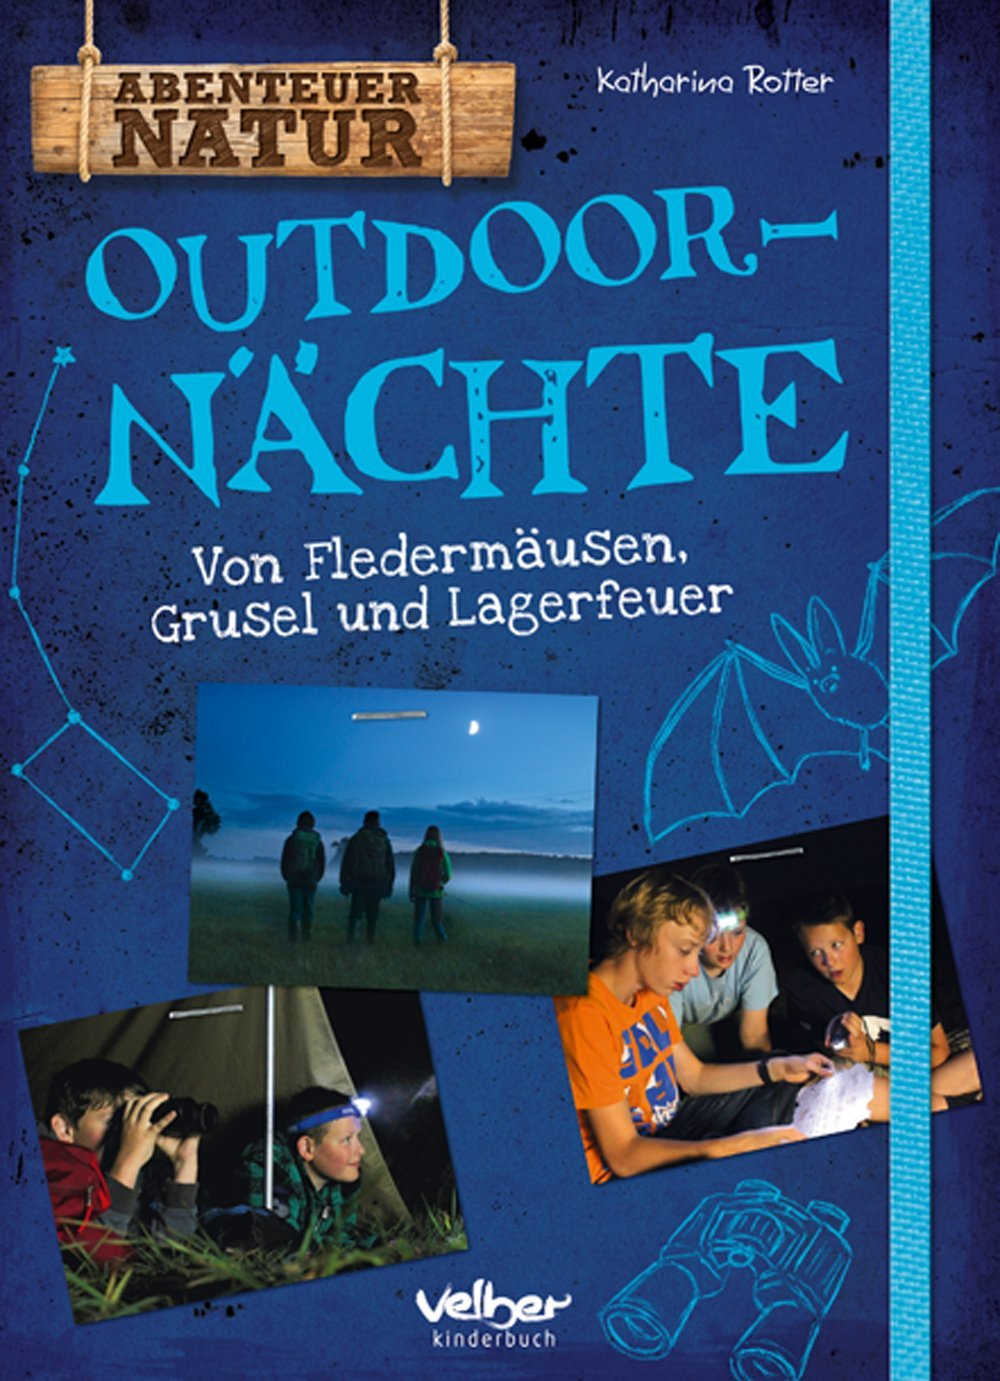 OUTDOOR-NÄCHTE